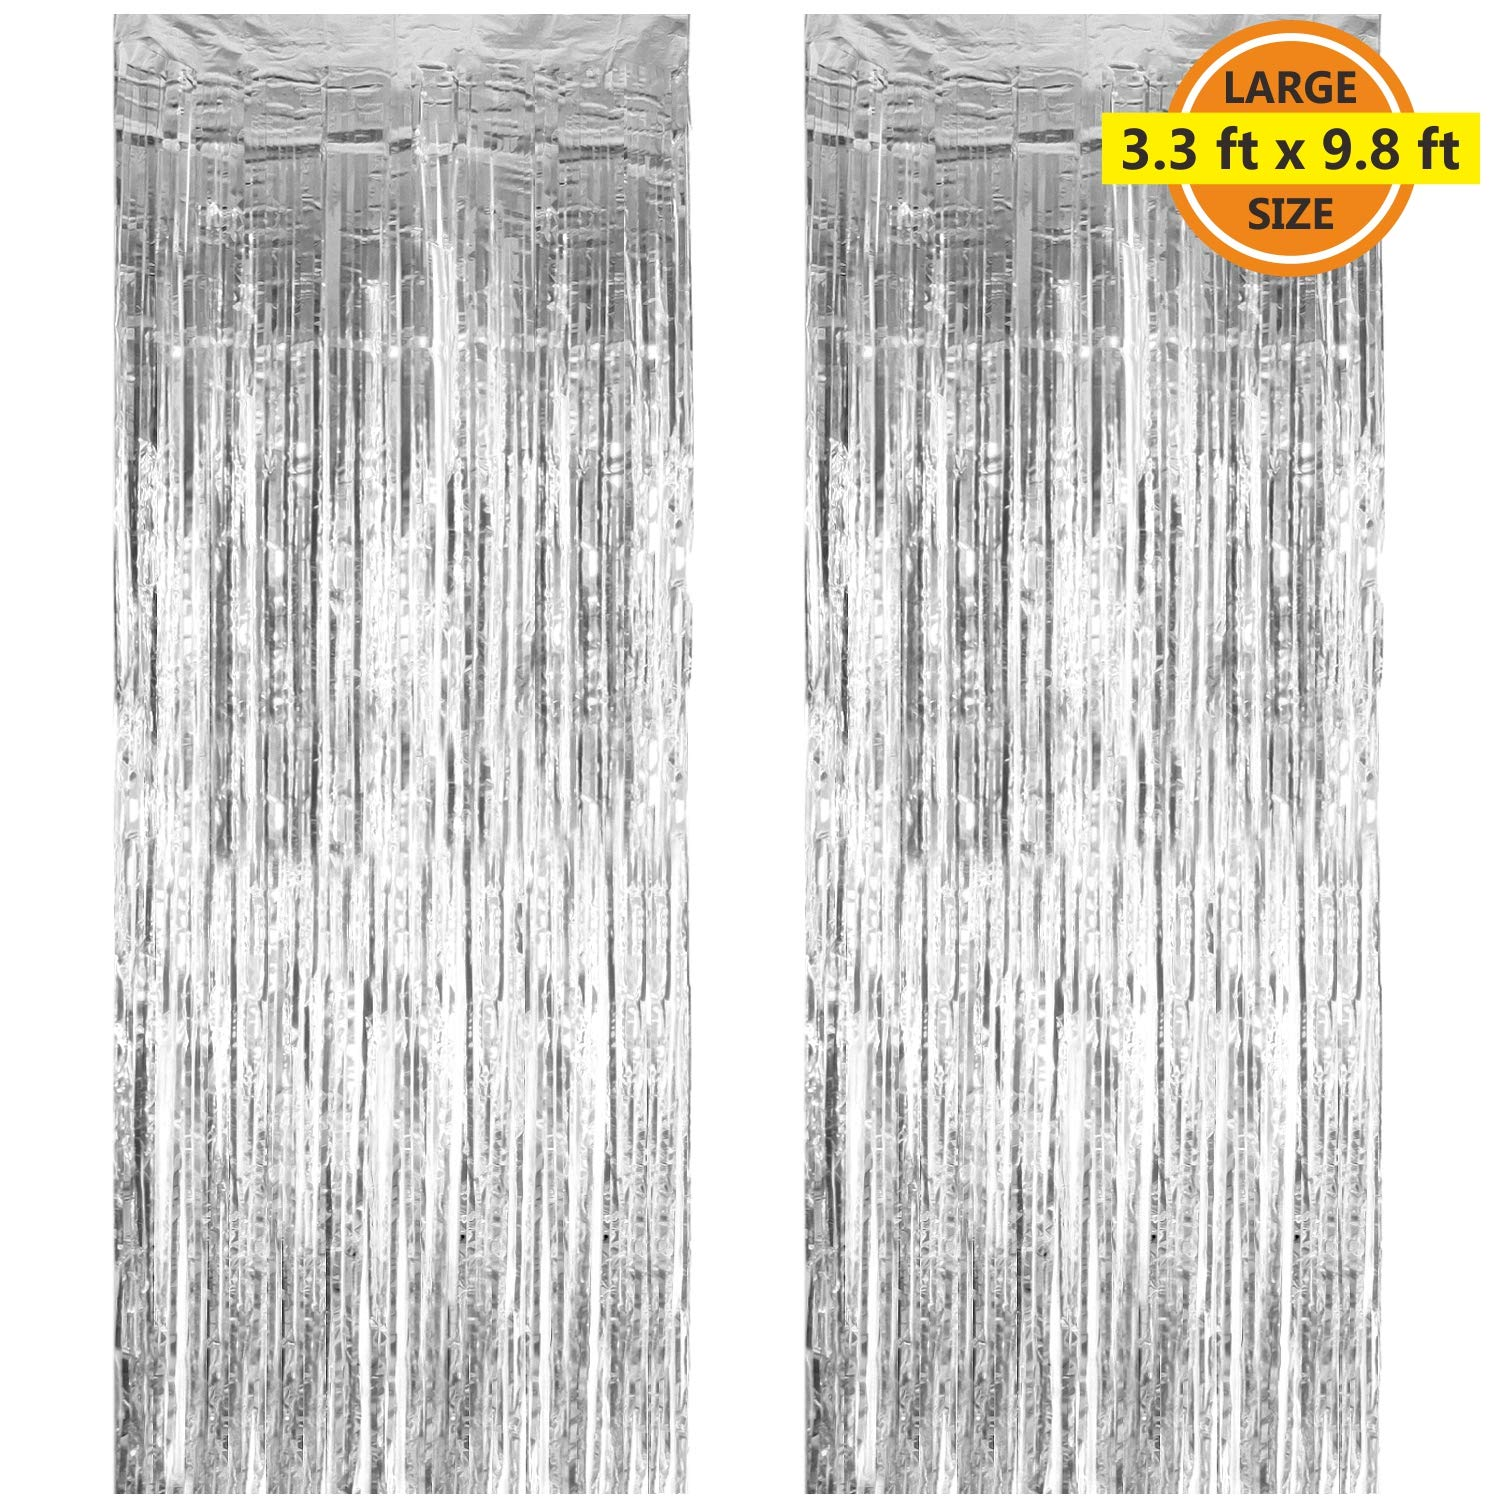 2 Pack 3.3 ft x 9.8 ft Foil Curtains Metallic Fringe Curtains Shimmer Curtain Photo Backdrop for Halloween Christmas Birthday Party Wedding Decor (Silver)